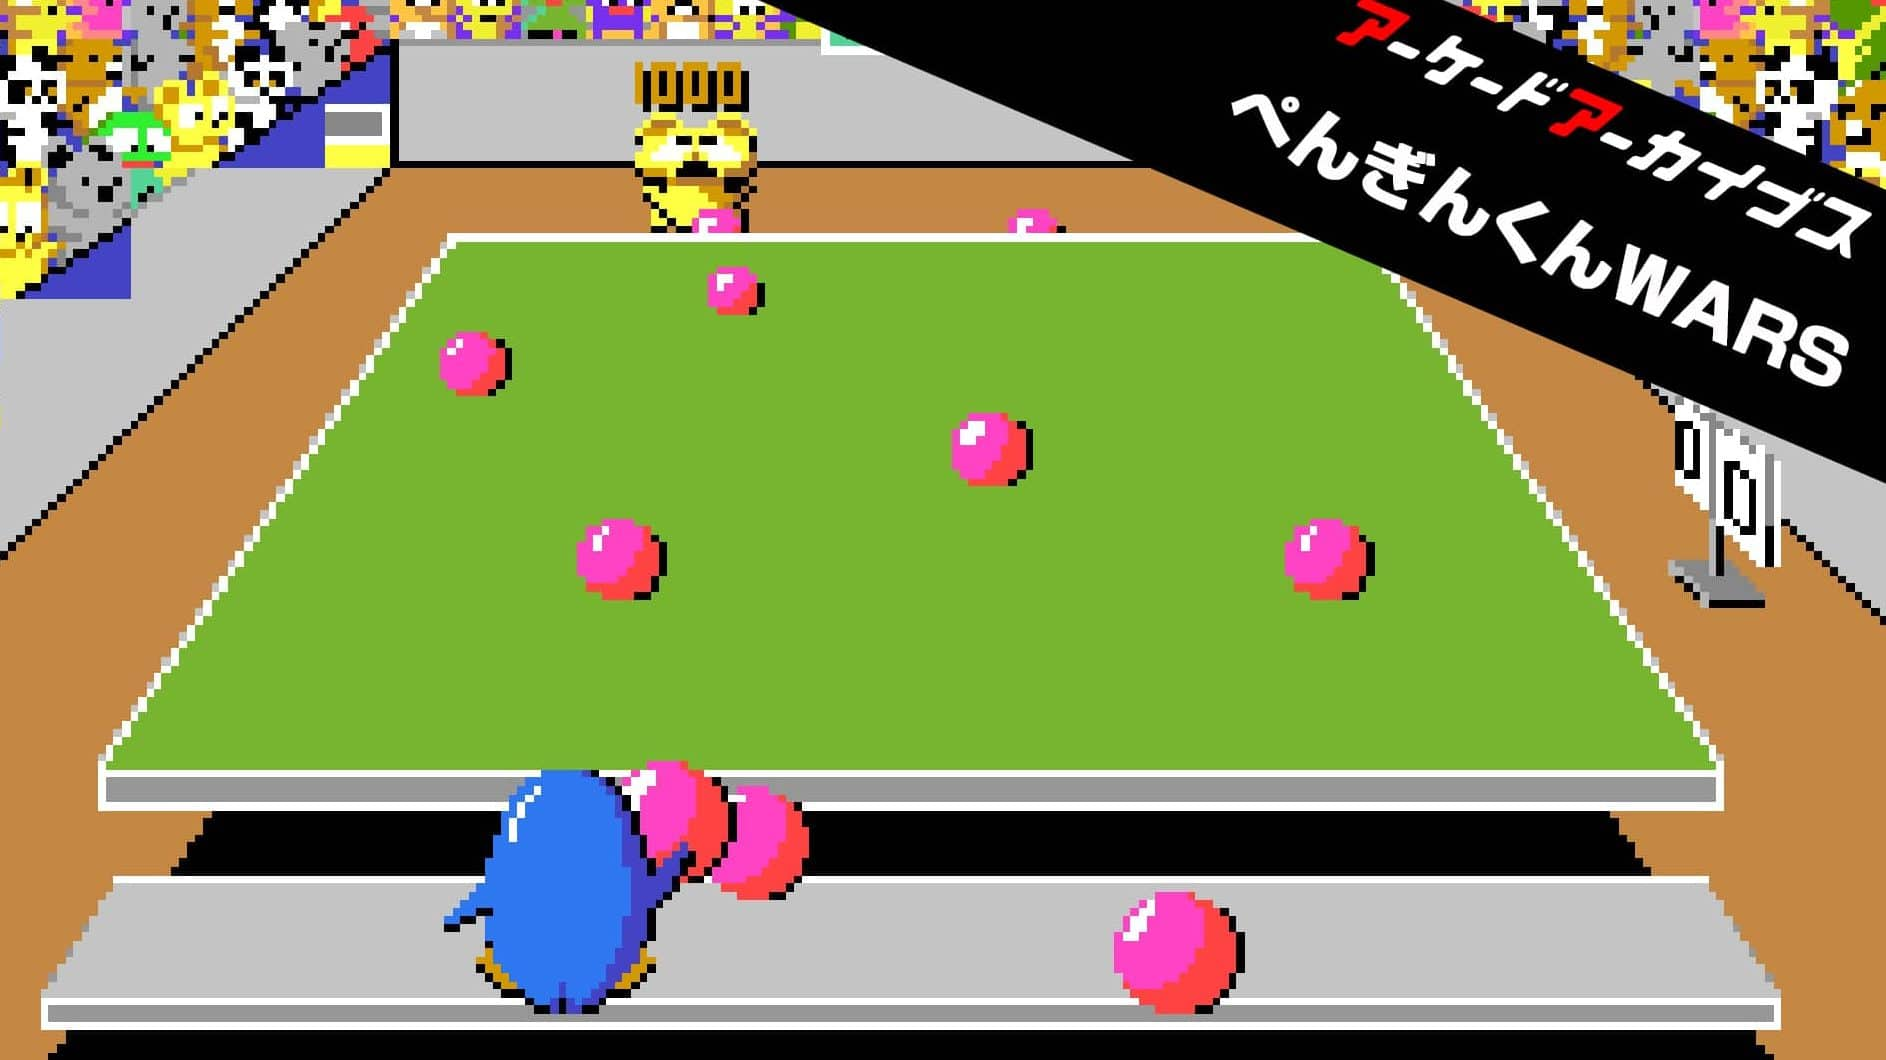 Arcade Archives Penguin-Kun Wars ya está disponible en Japón y llega esta semana a Occidente